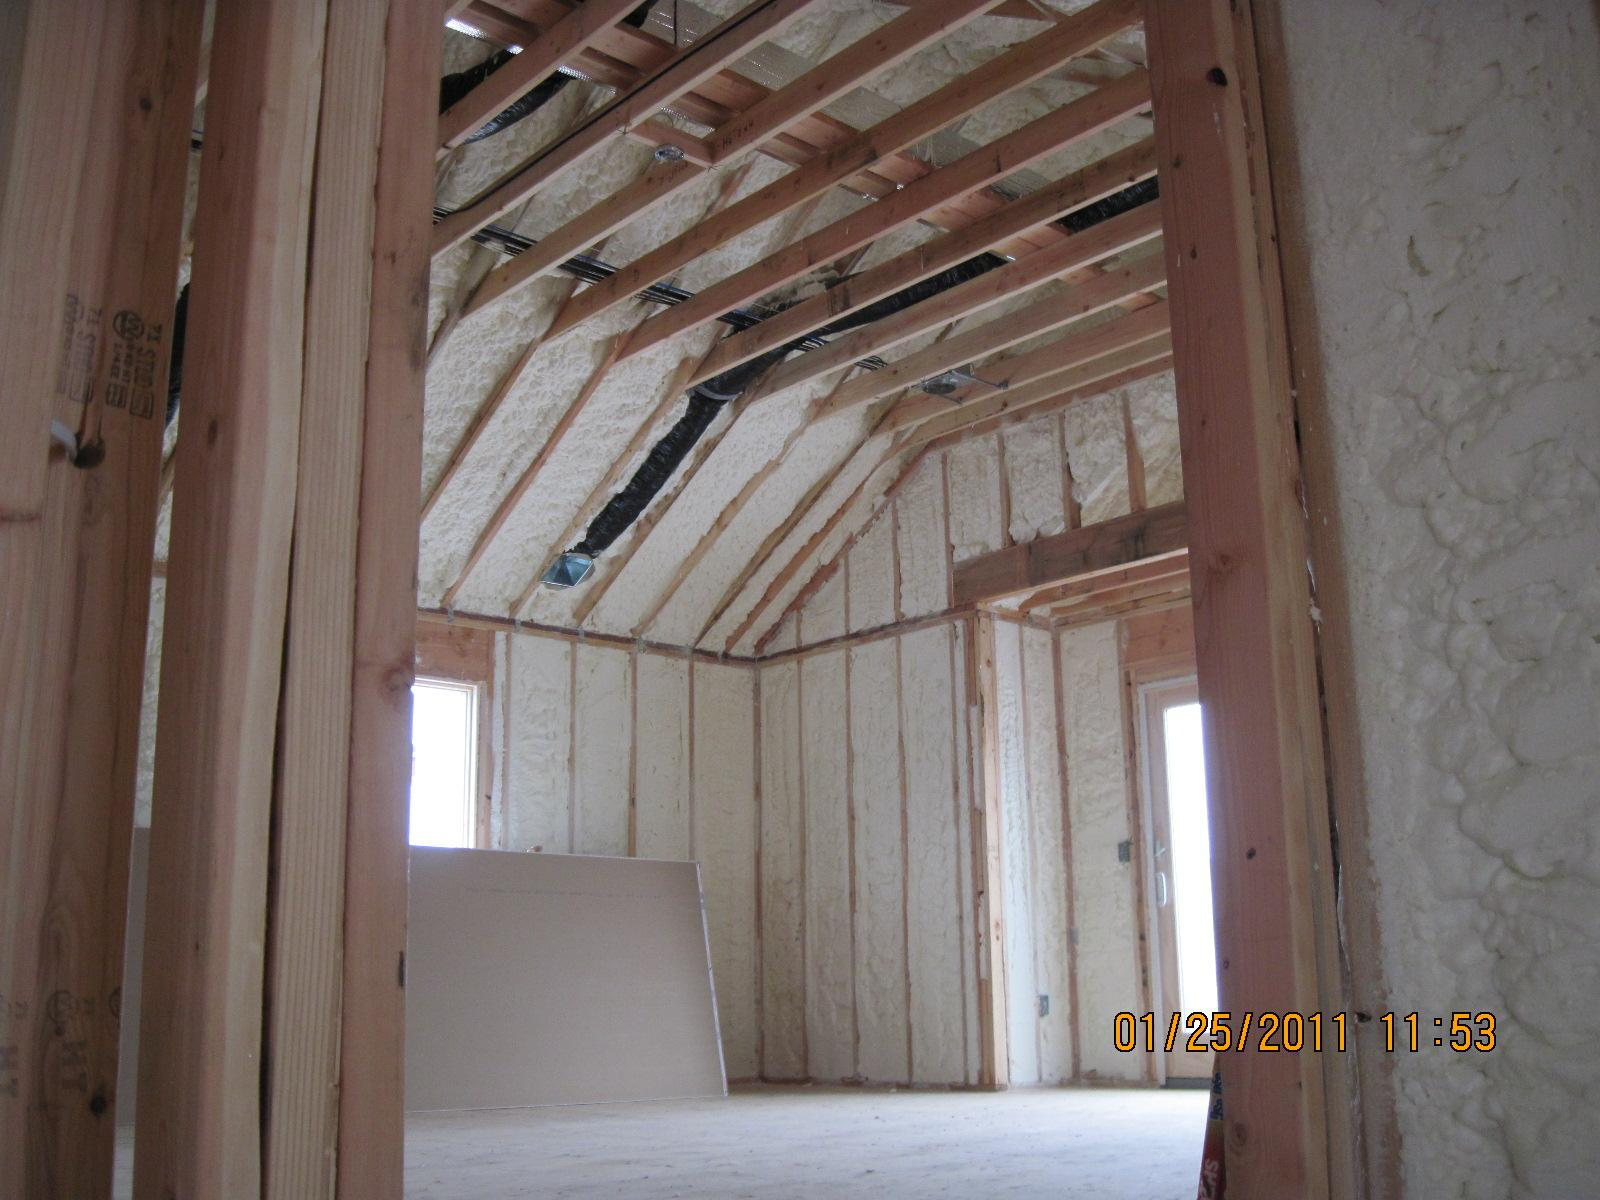 Ceiling slopes insulated perfectly!